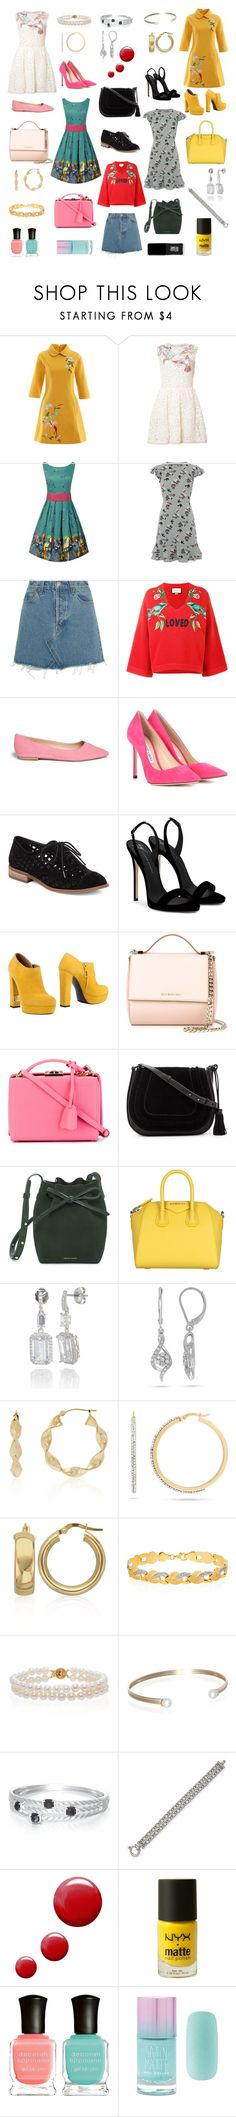 """Birds"" by kathrina1yana2jemma3cloe4 ❤ liked on Polyvore featuring RED Valentino, Oasis, RE/DONE, Gucci, Sam Edelman, Jimmy Choo, Jessica Simpson, Giuseppe Zanotti, R&Renzi and Givenchy"